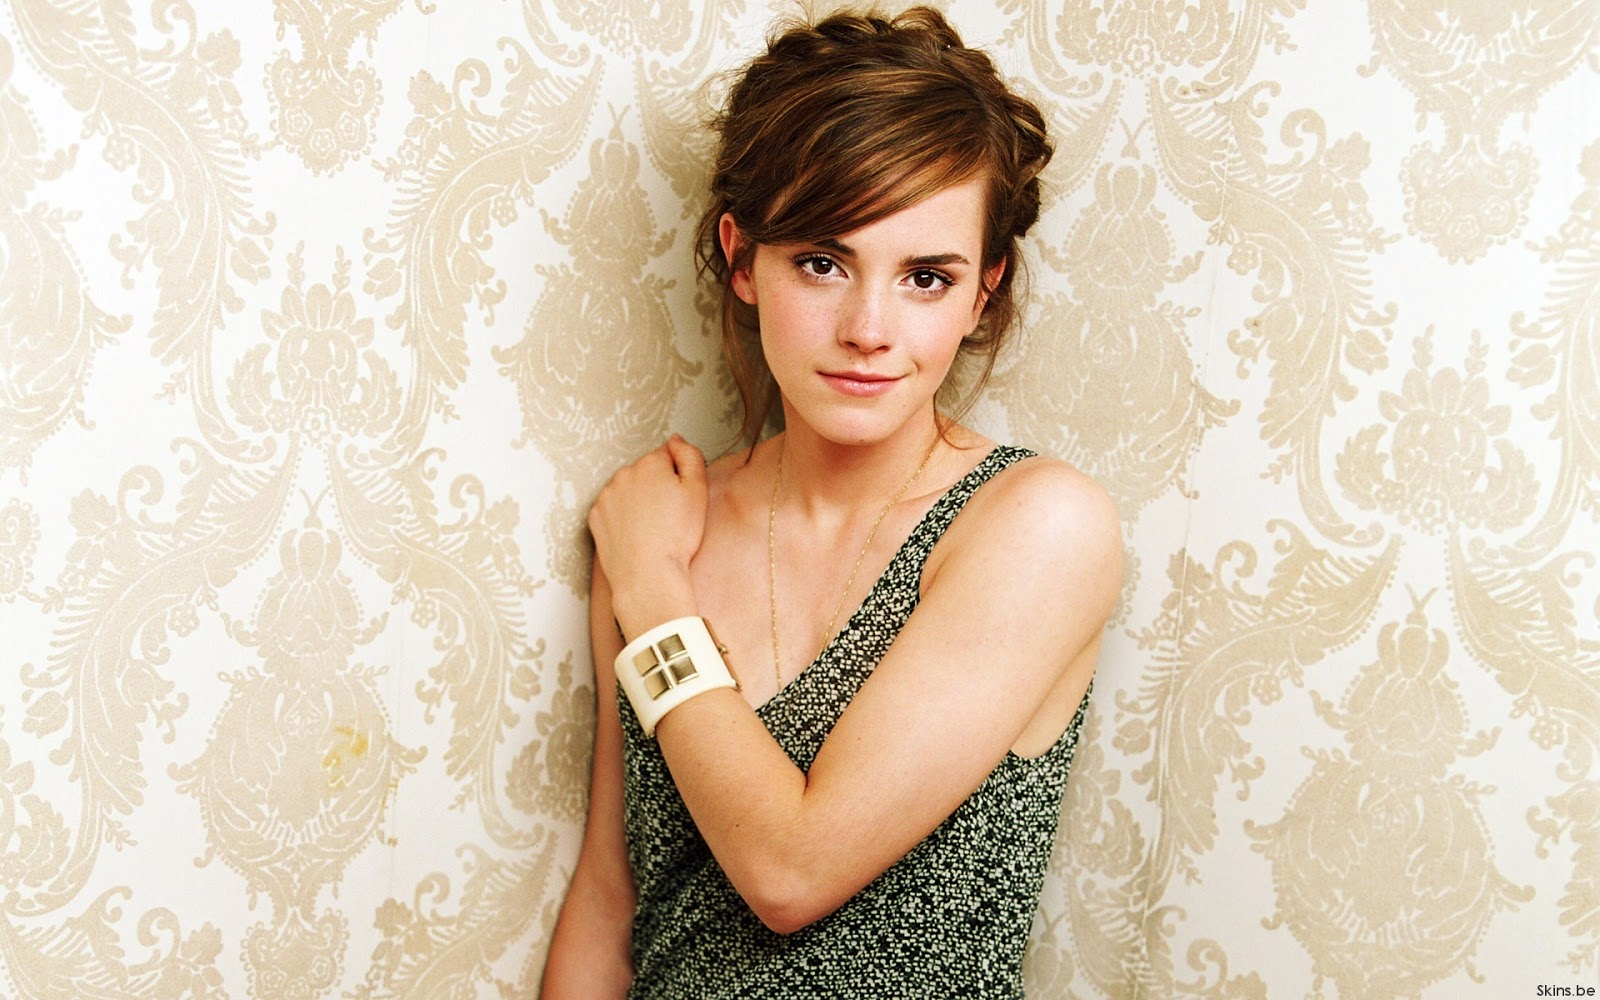 emma watson hd hot - photo #24